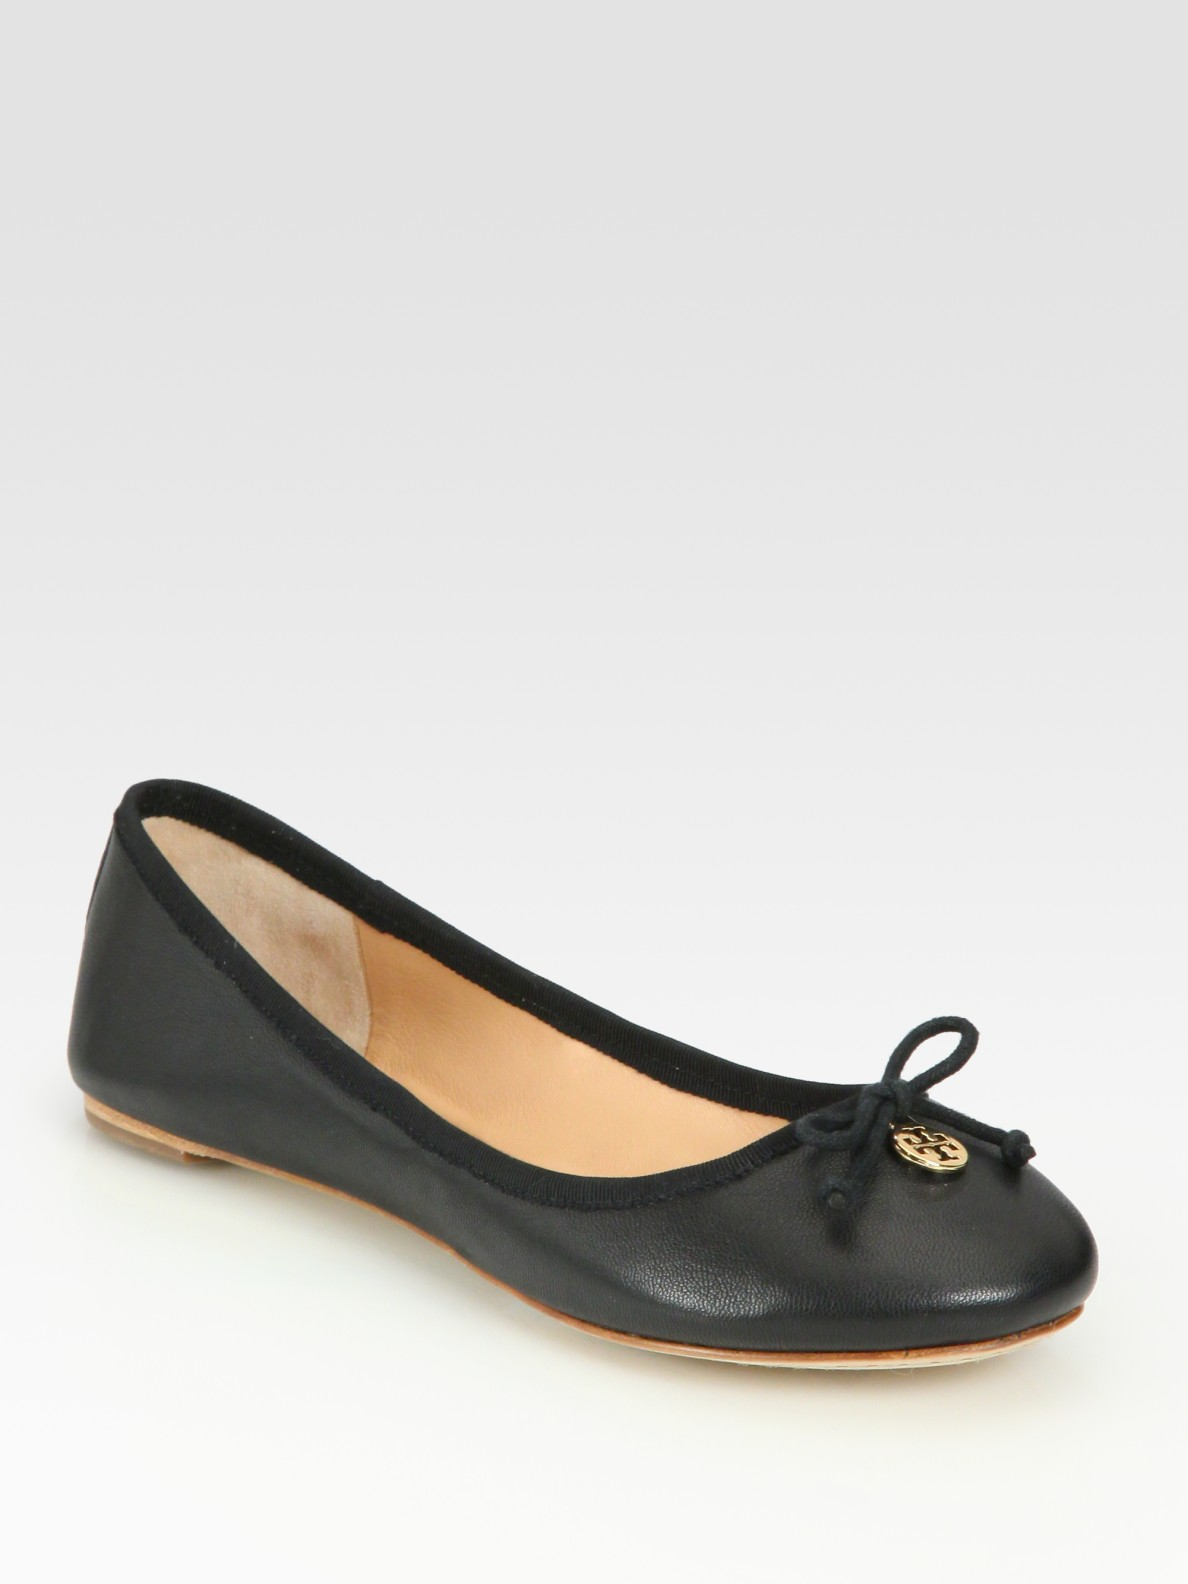 0f2a368964aa9 wholesale lyst tory burch chelsea leather bow logo ballet flats in black  51500 243ed